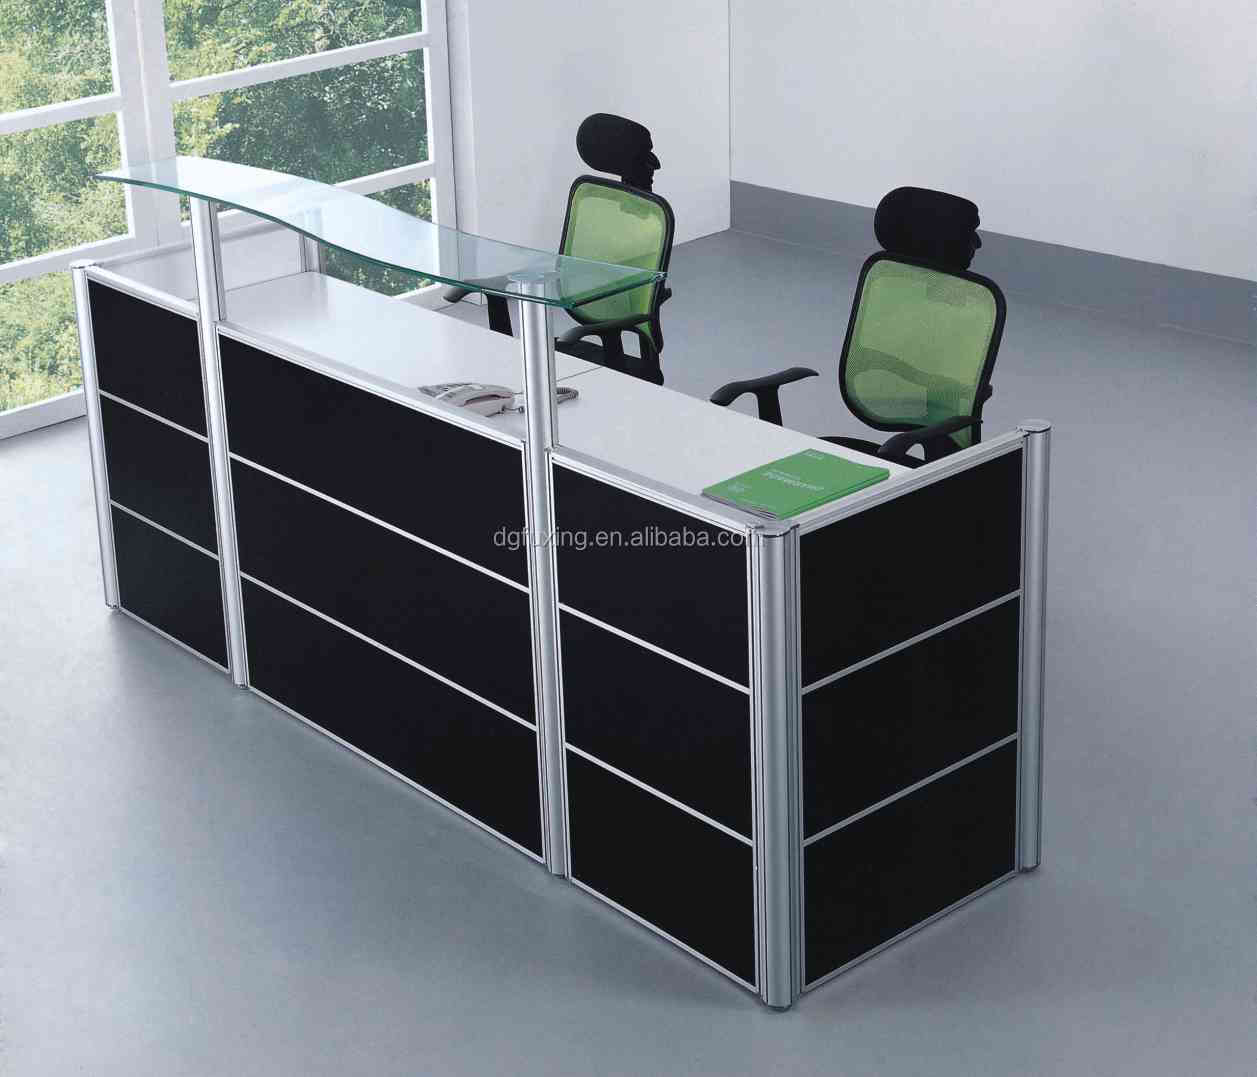 Mdf Board New Design Front Table Cash Register Buy